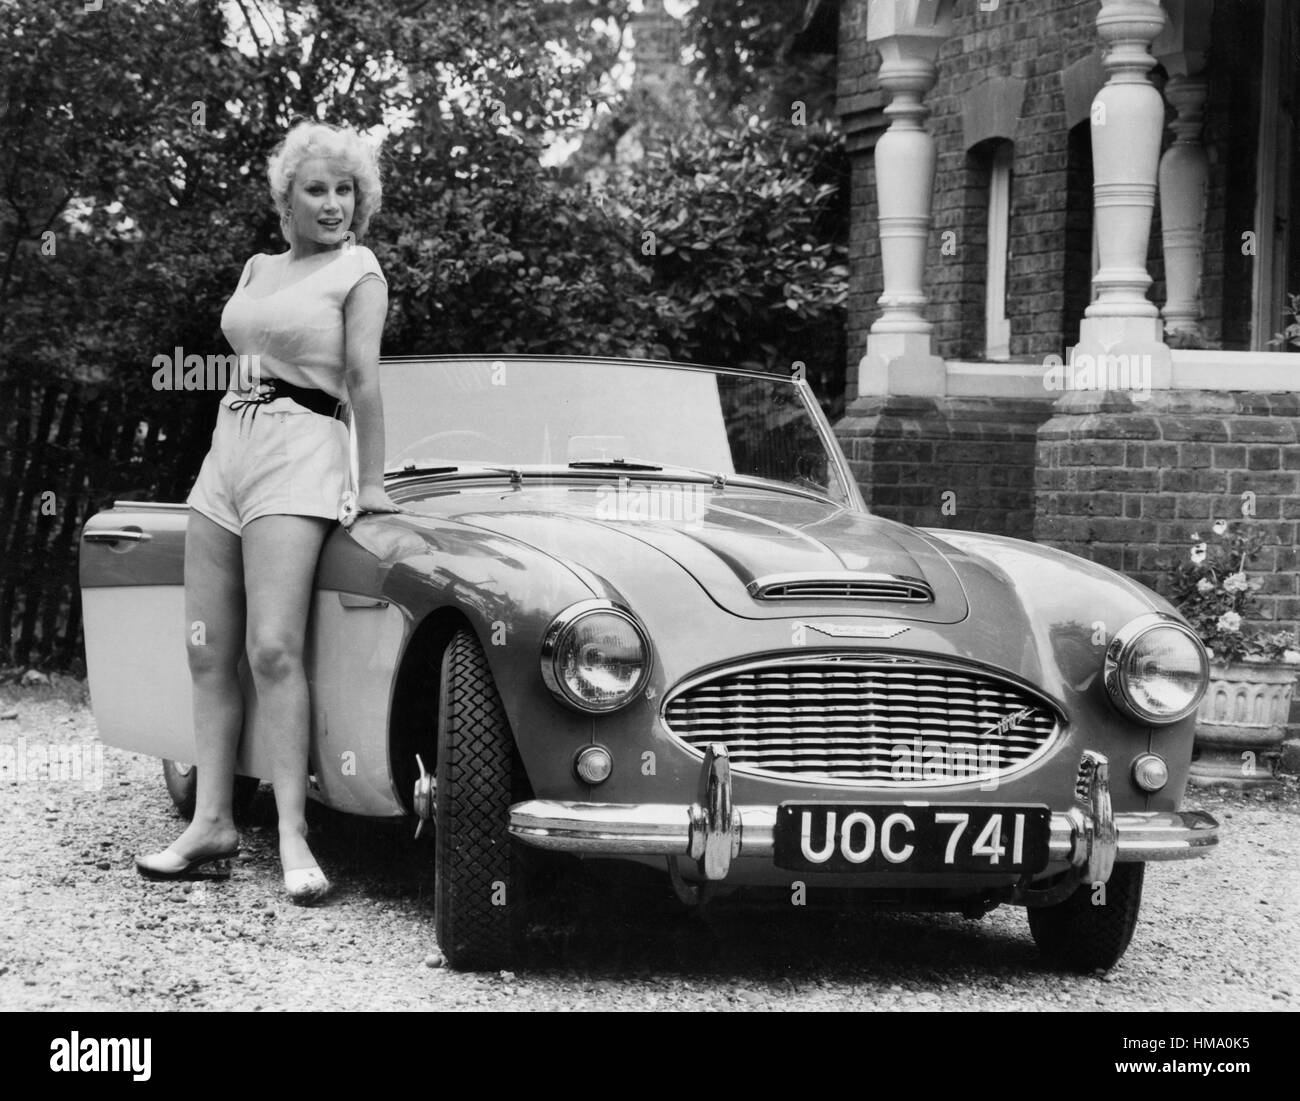 1957 Austin - Healey 100-6 Stockbild